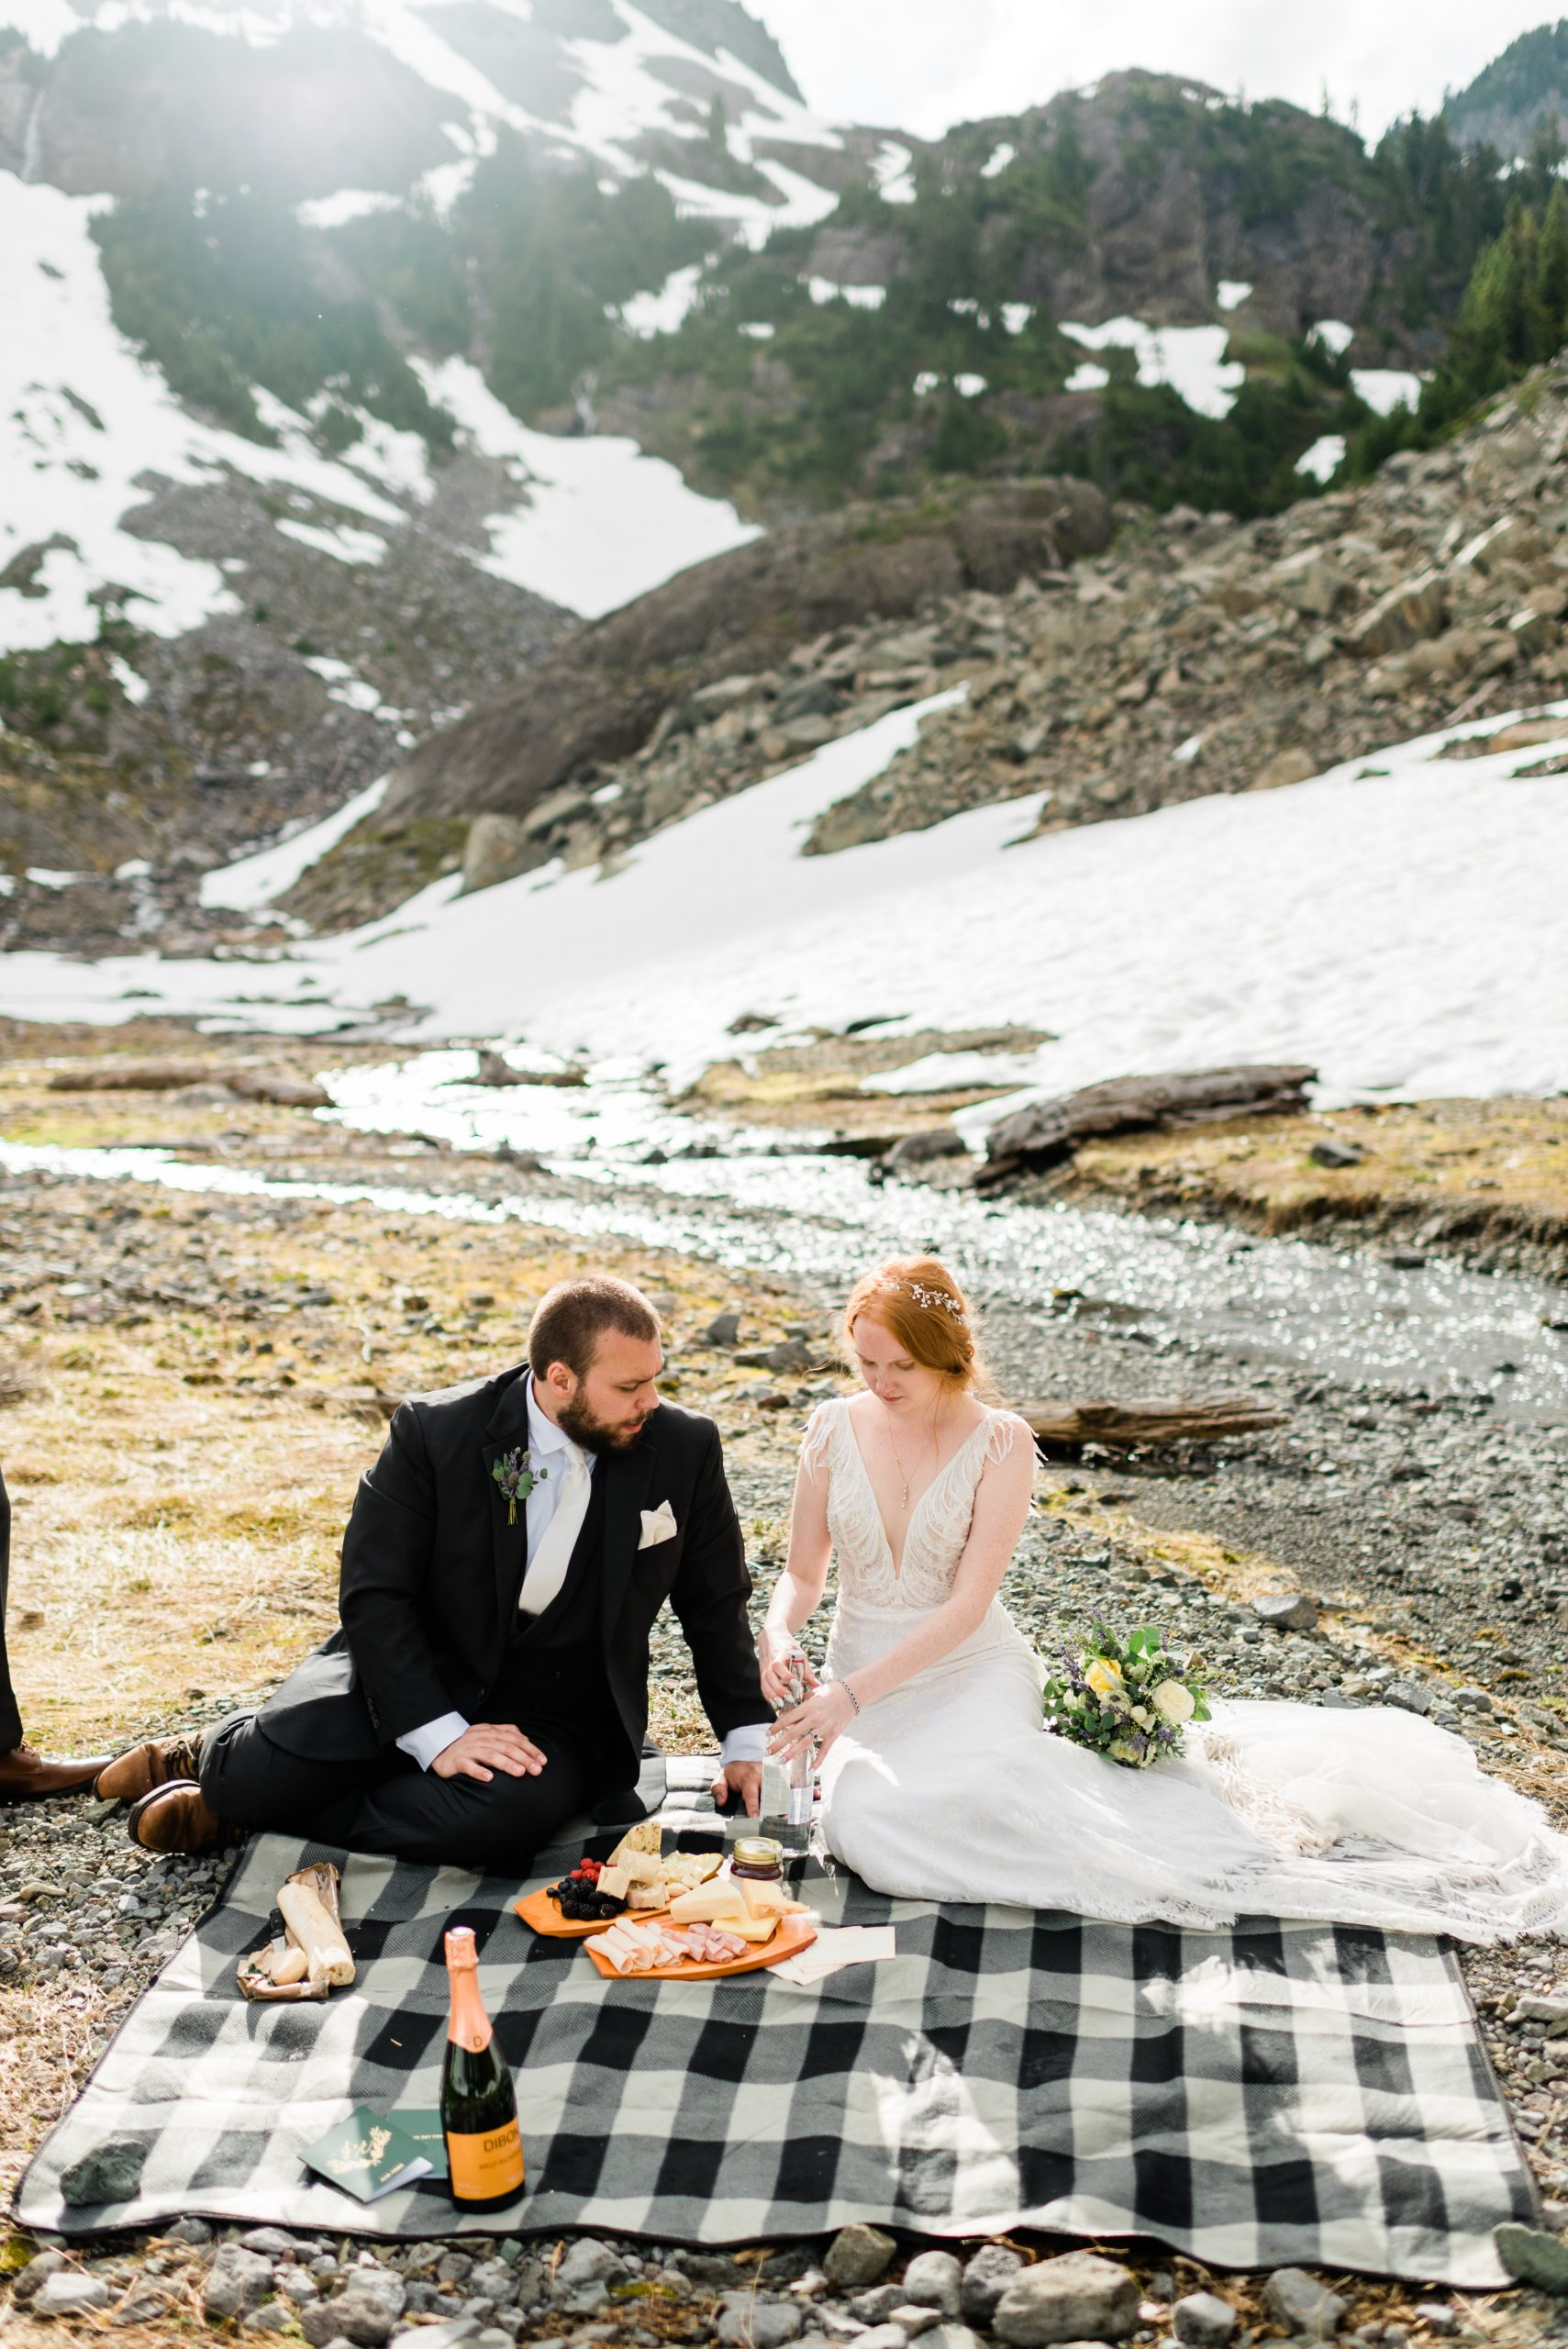 Picnic in the mountains. Elopement day activities.